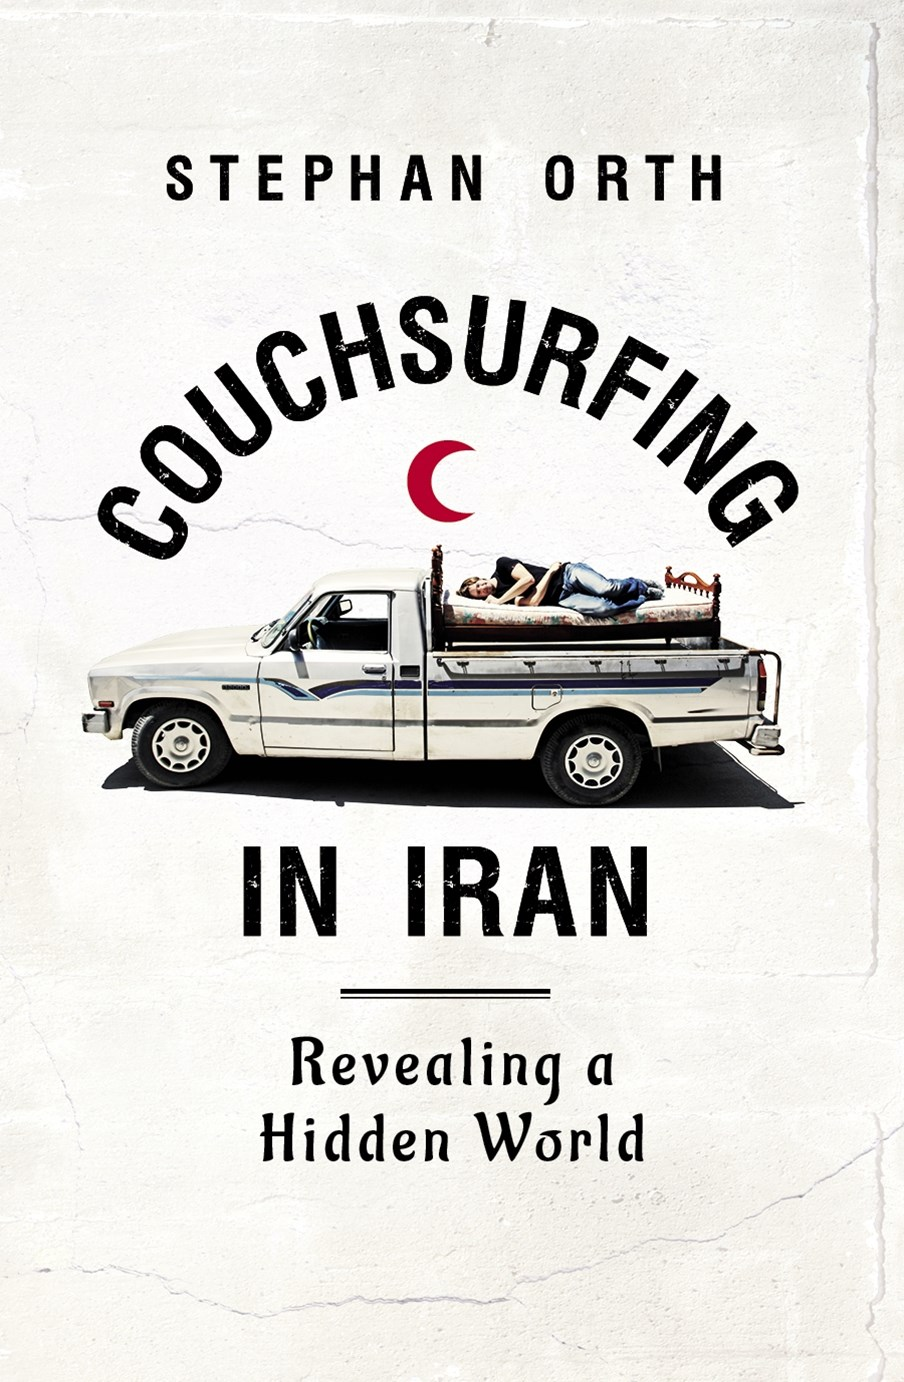 Couchsurfing in Iran: Revealing a Hidden World